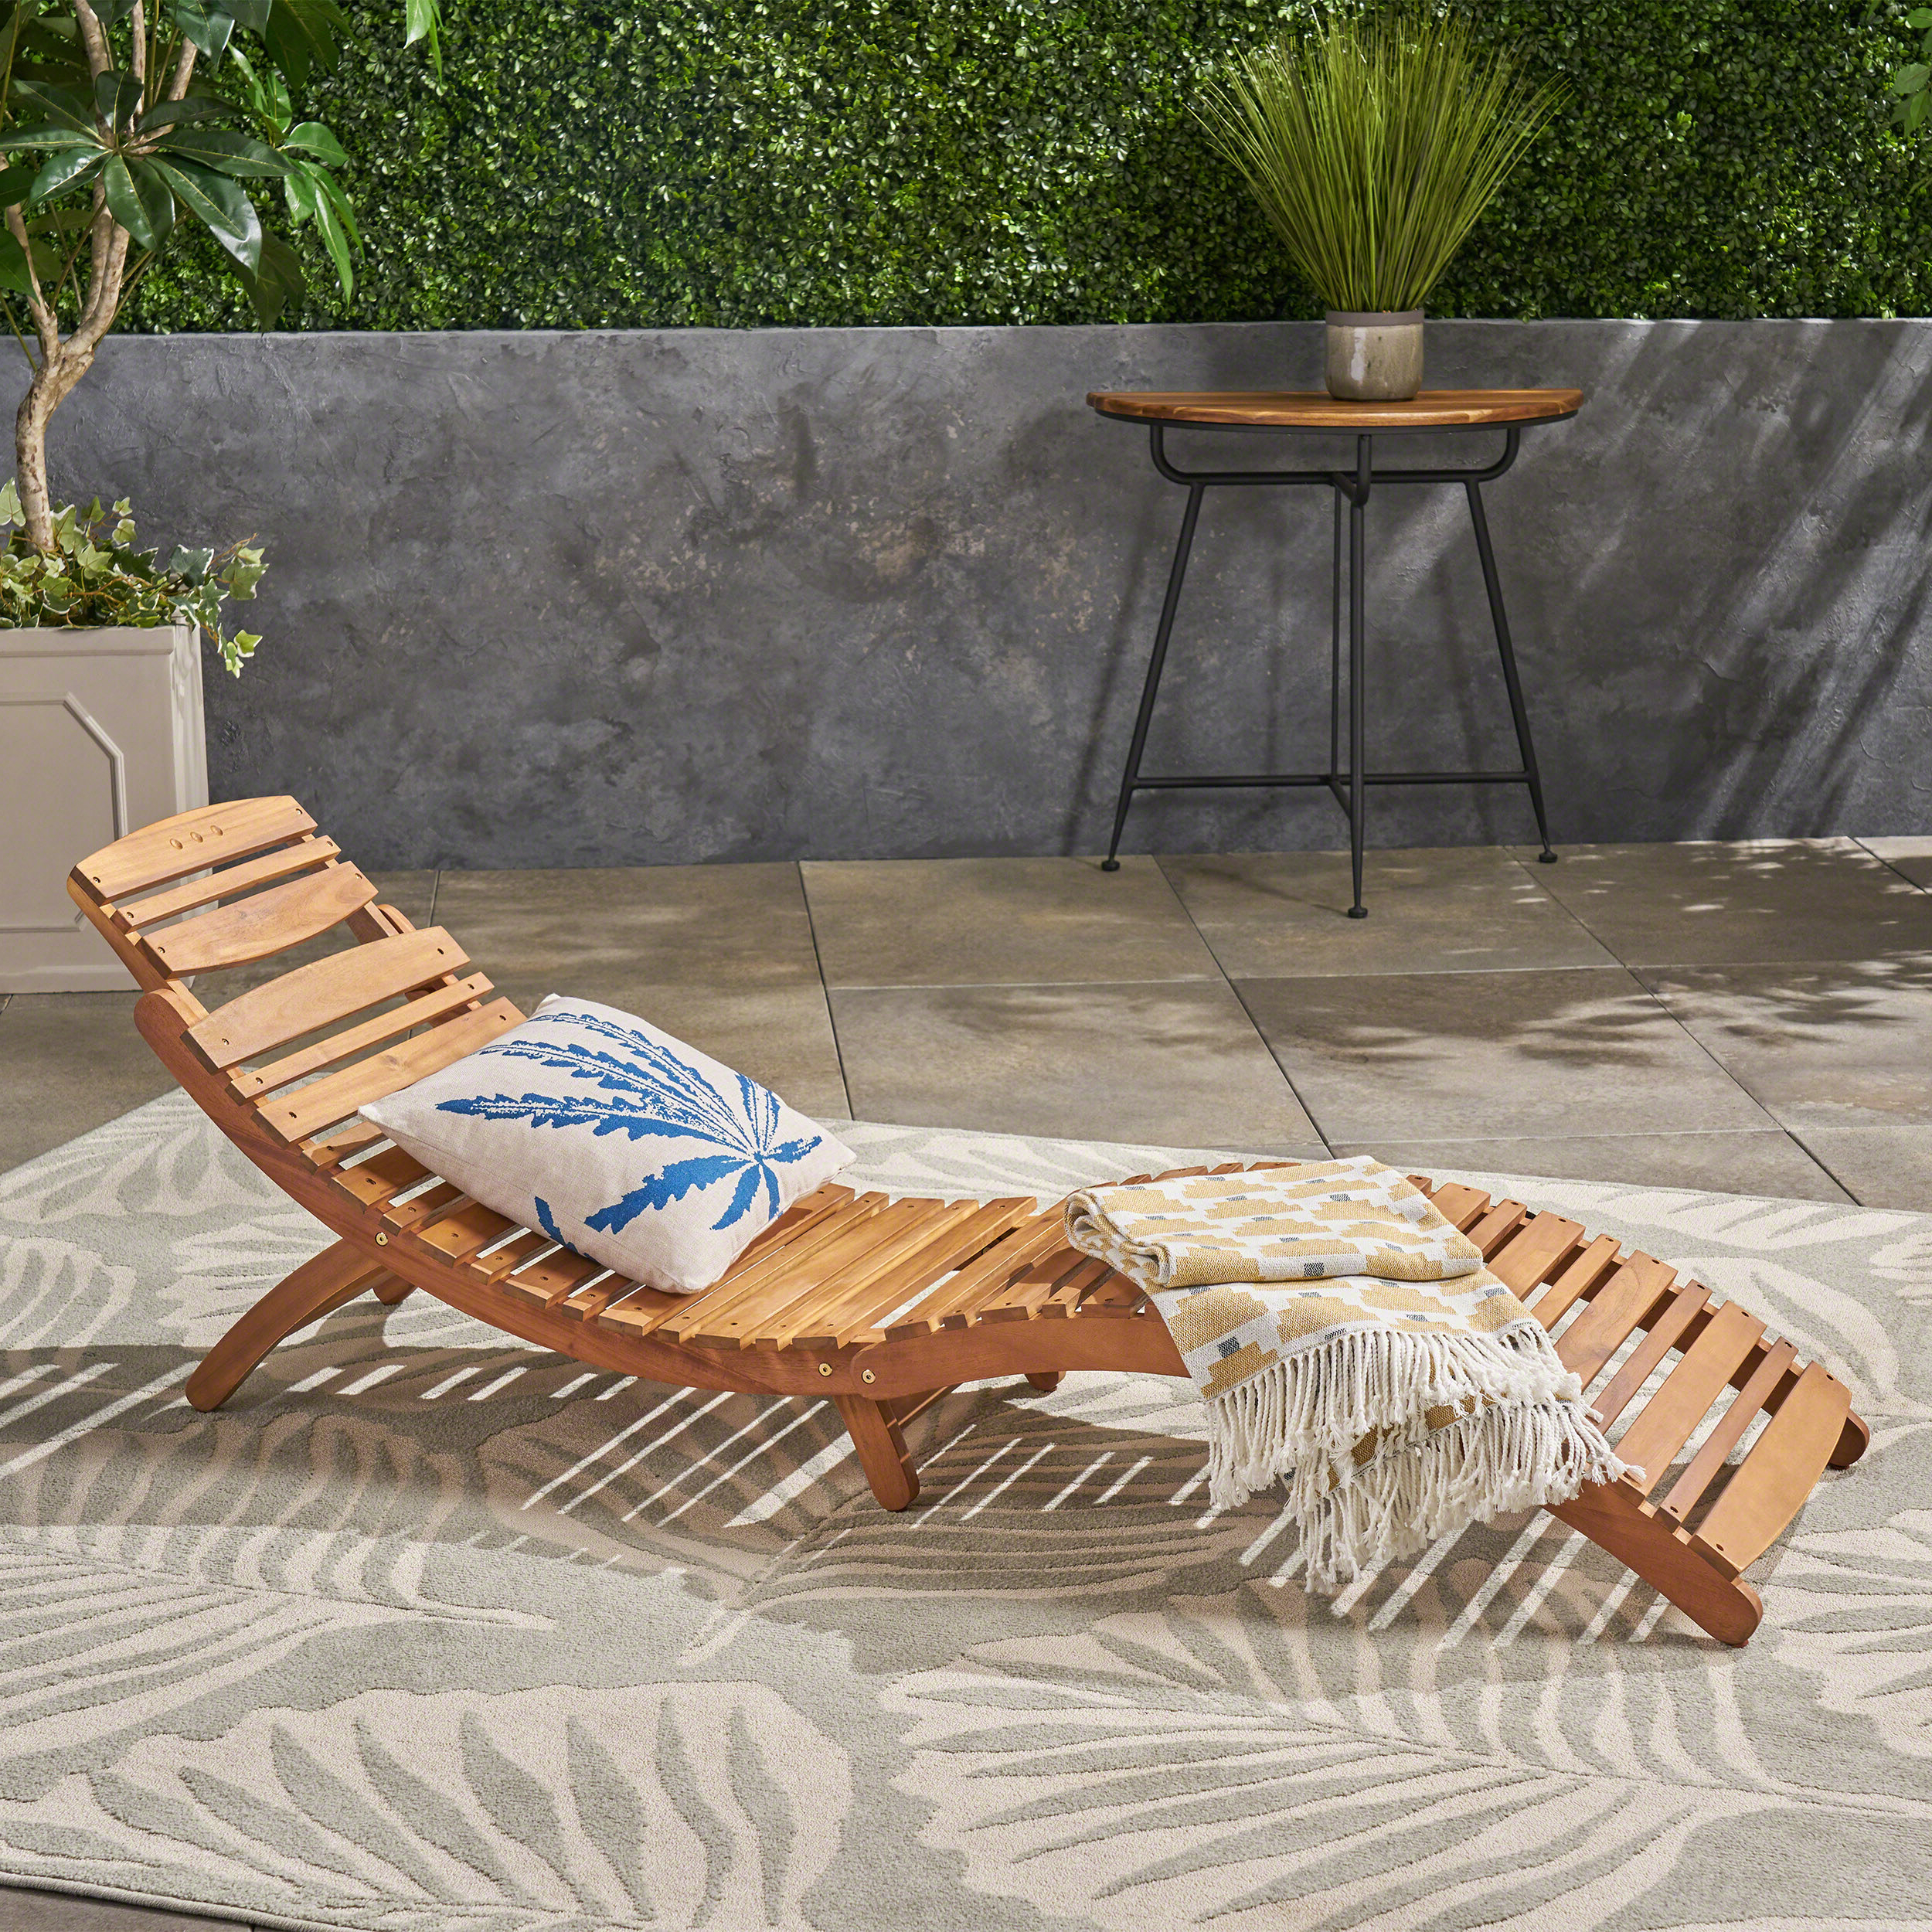 Outdoor Rustic Acacia Wood Chaise Lounges With Wicker Seats Regarding Most Up To Date Tifany Wood Outdoor Chaise Lounge (View 18 of 25)